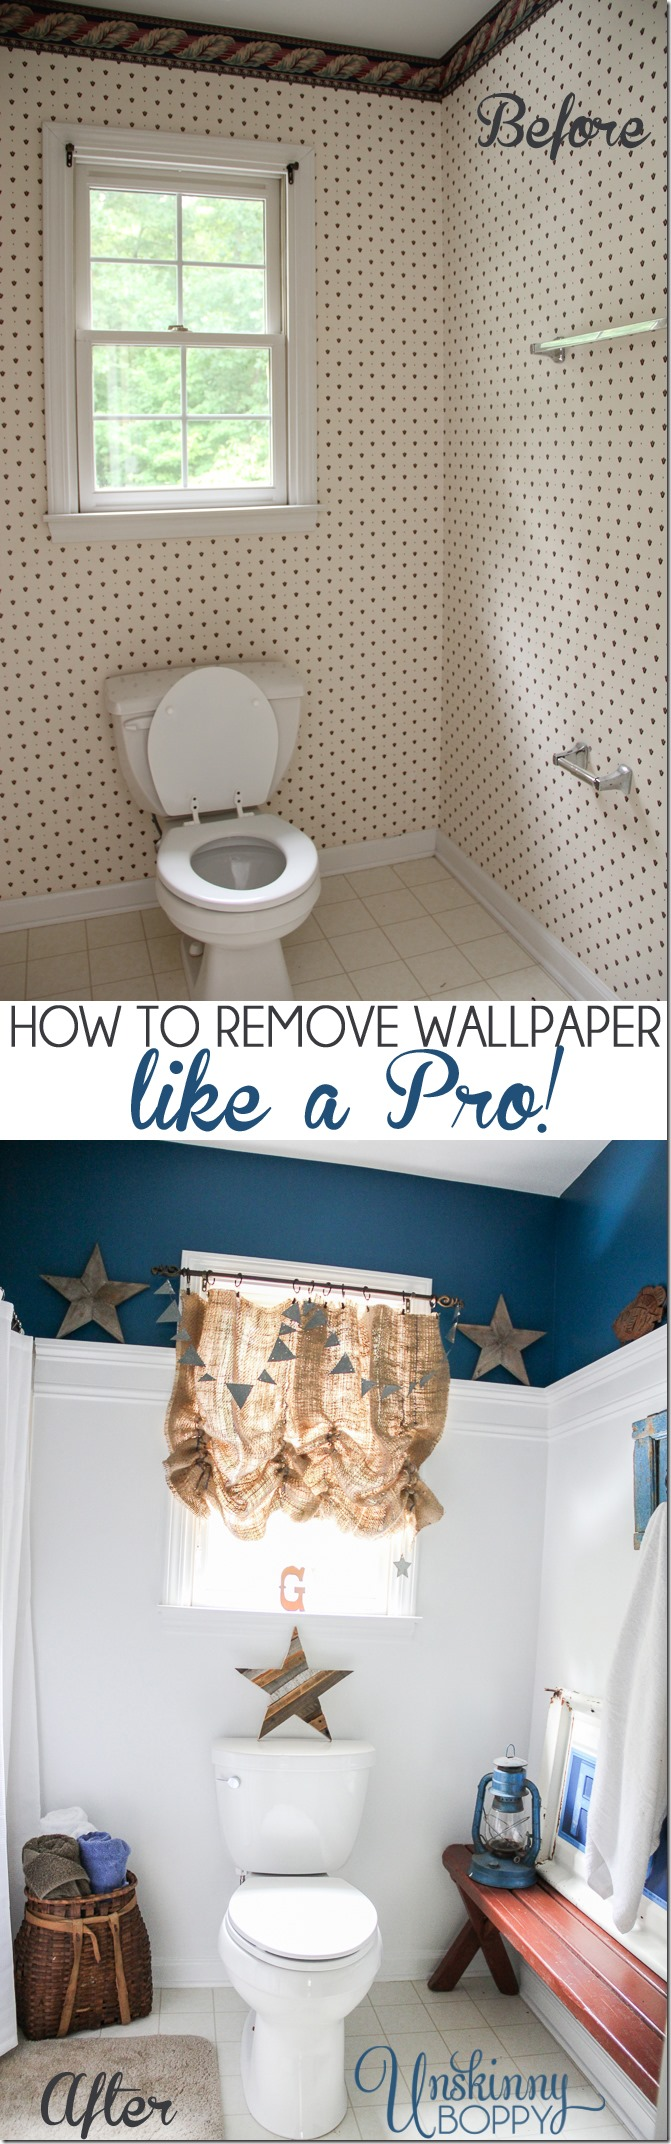 How to Remove Wallpaper like a_Pro